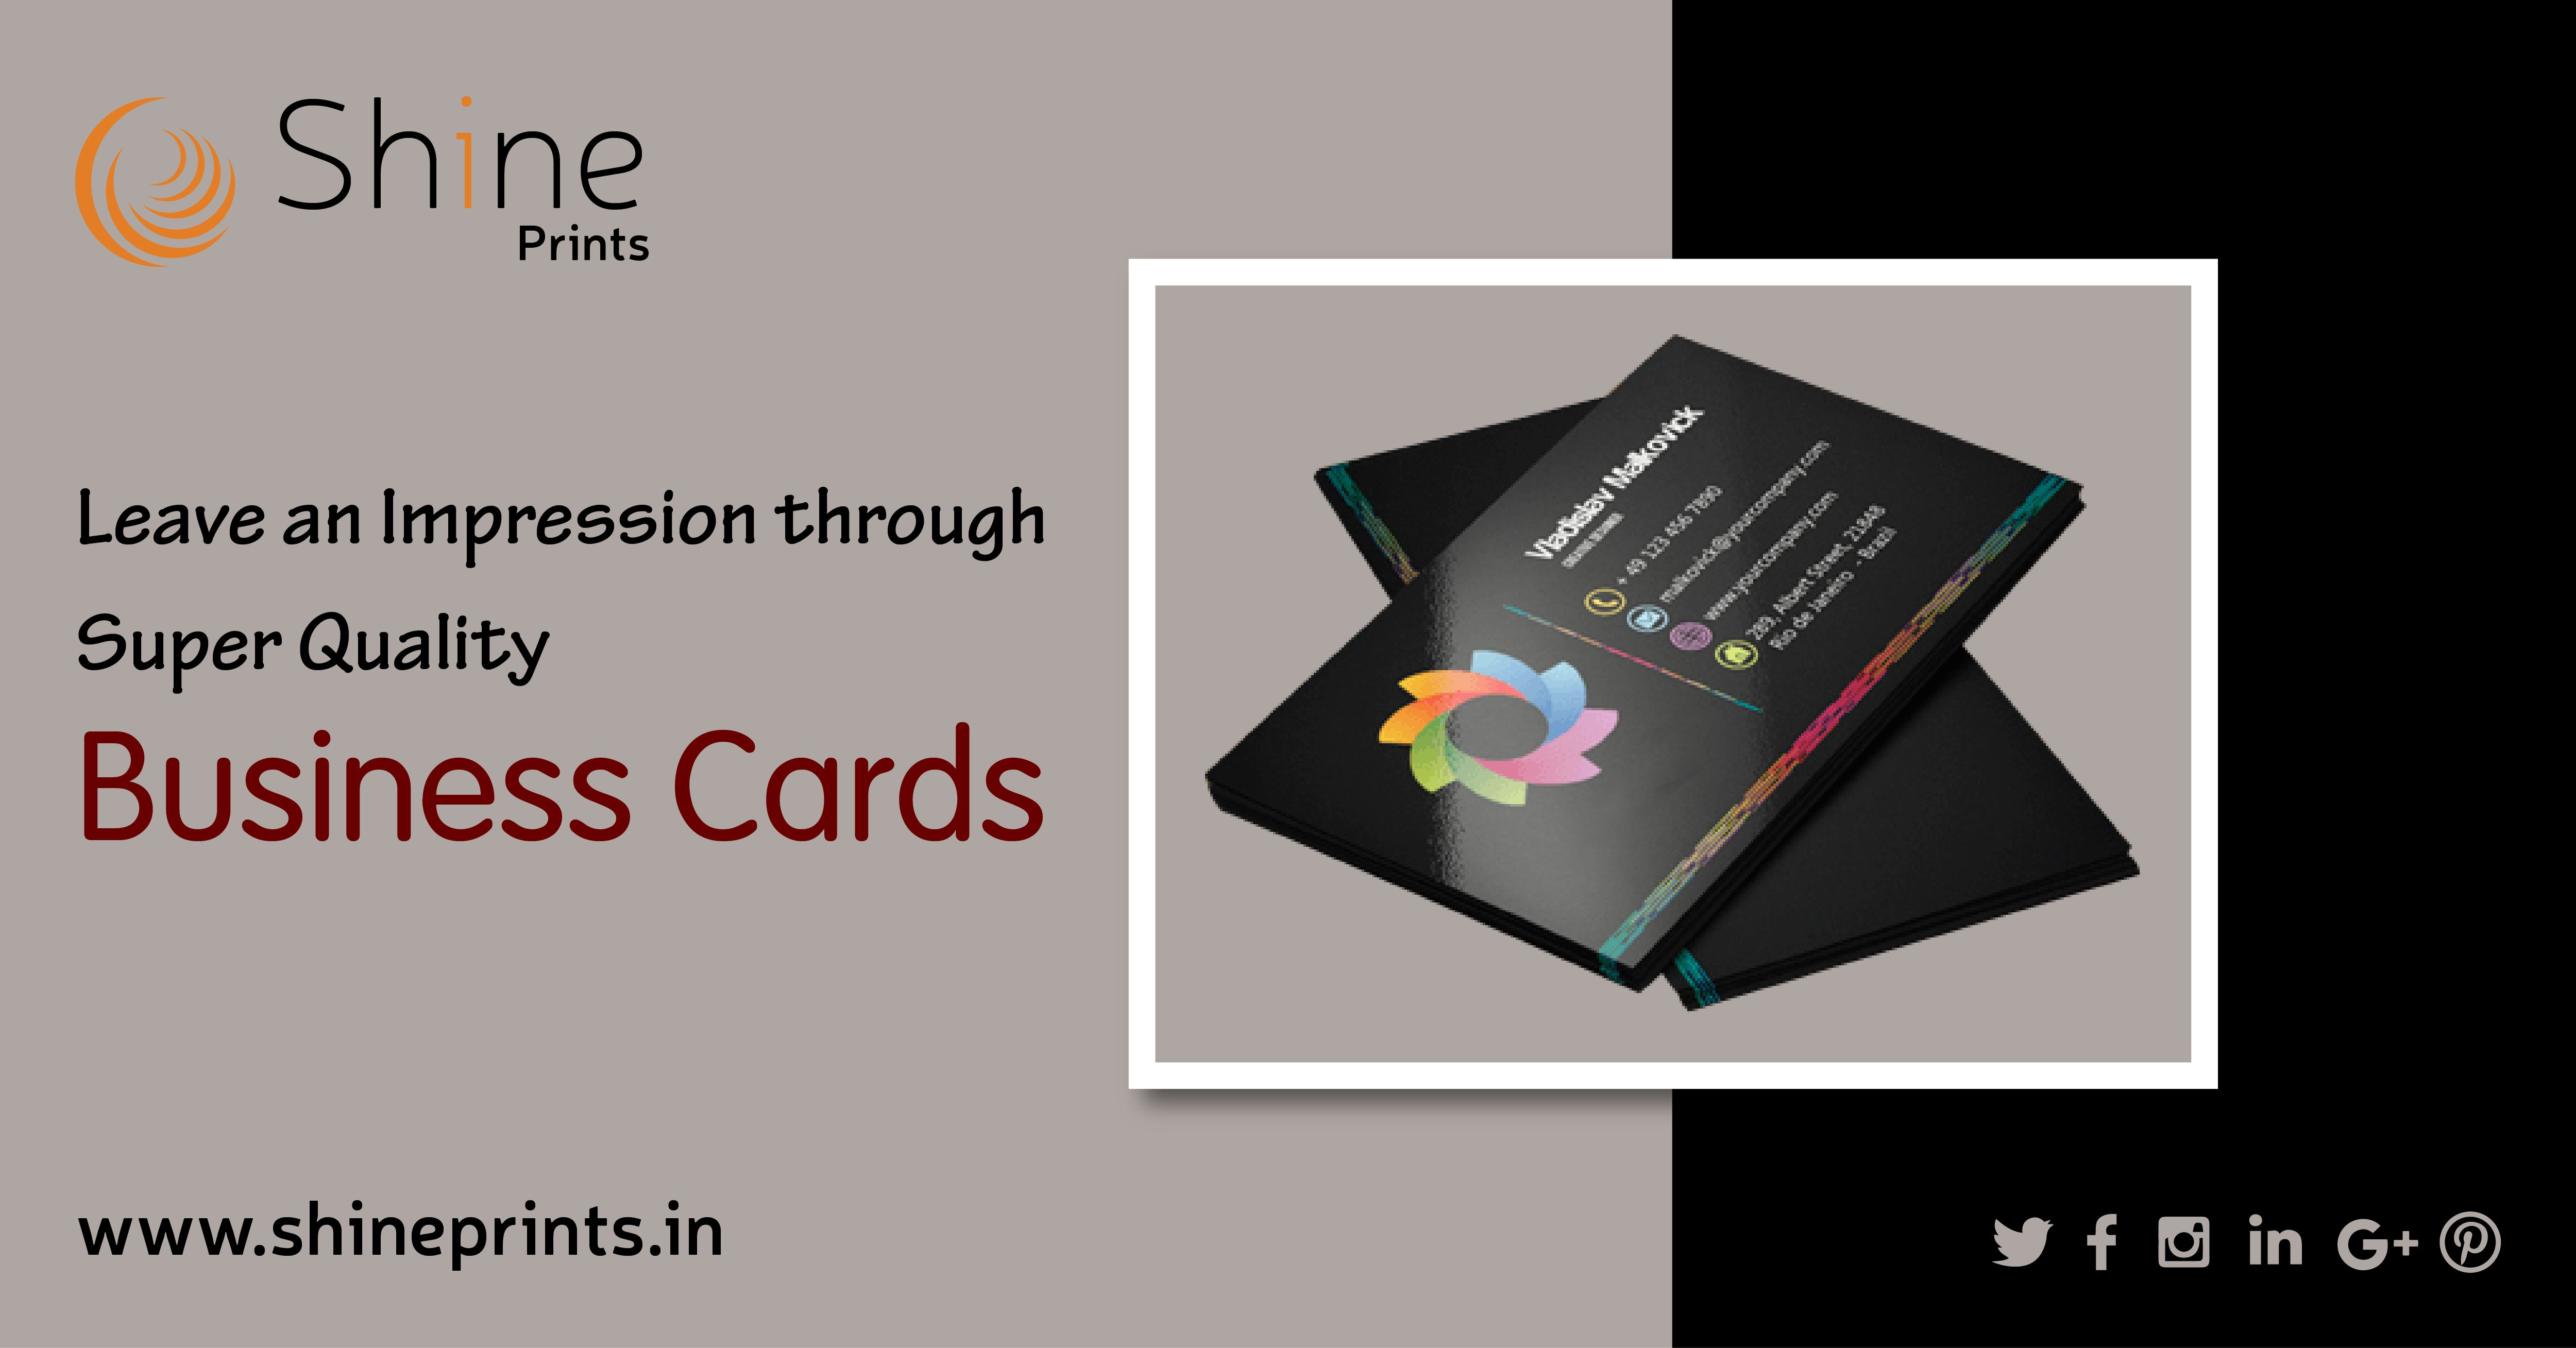 A Well Designed Business Card Is A Very Good Conversion Starter And Best Way Of Making Lasting Impression Visiting Card Printing Wellness Design Visiting Cards